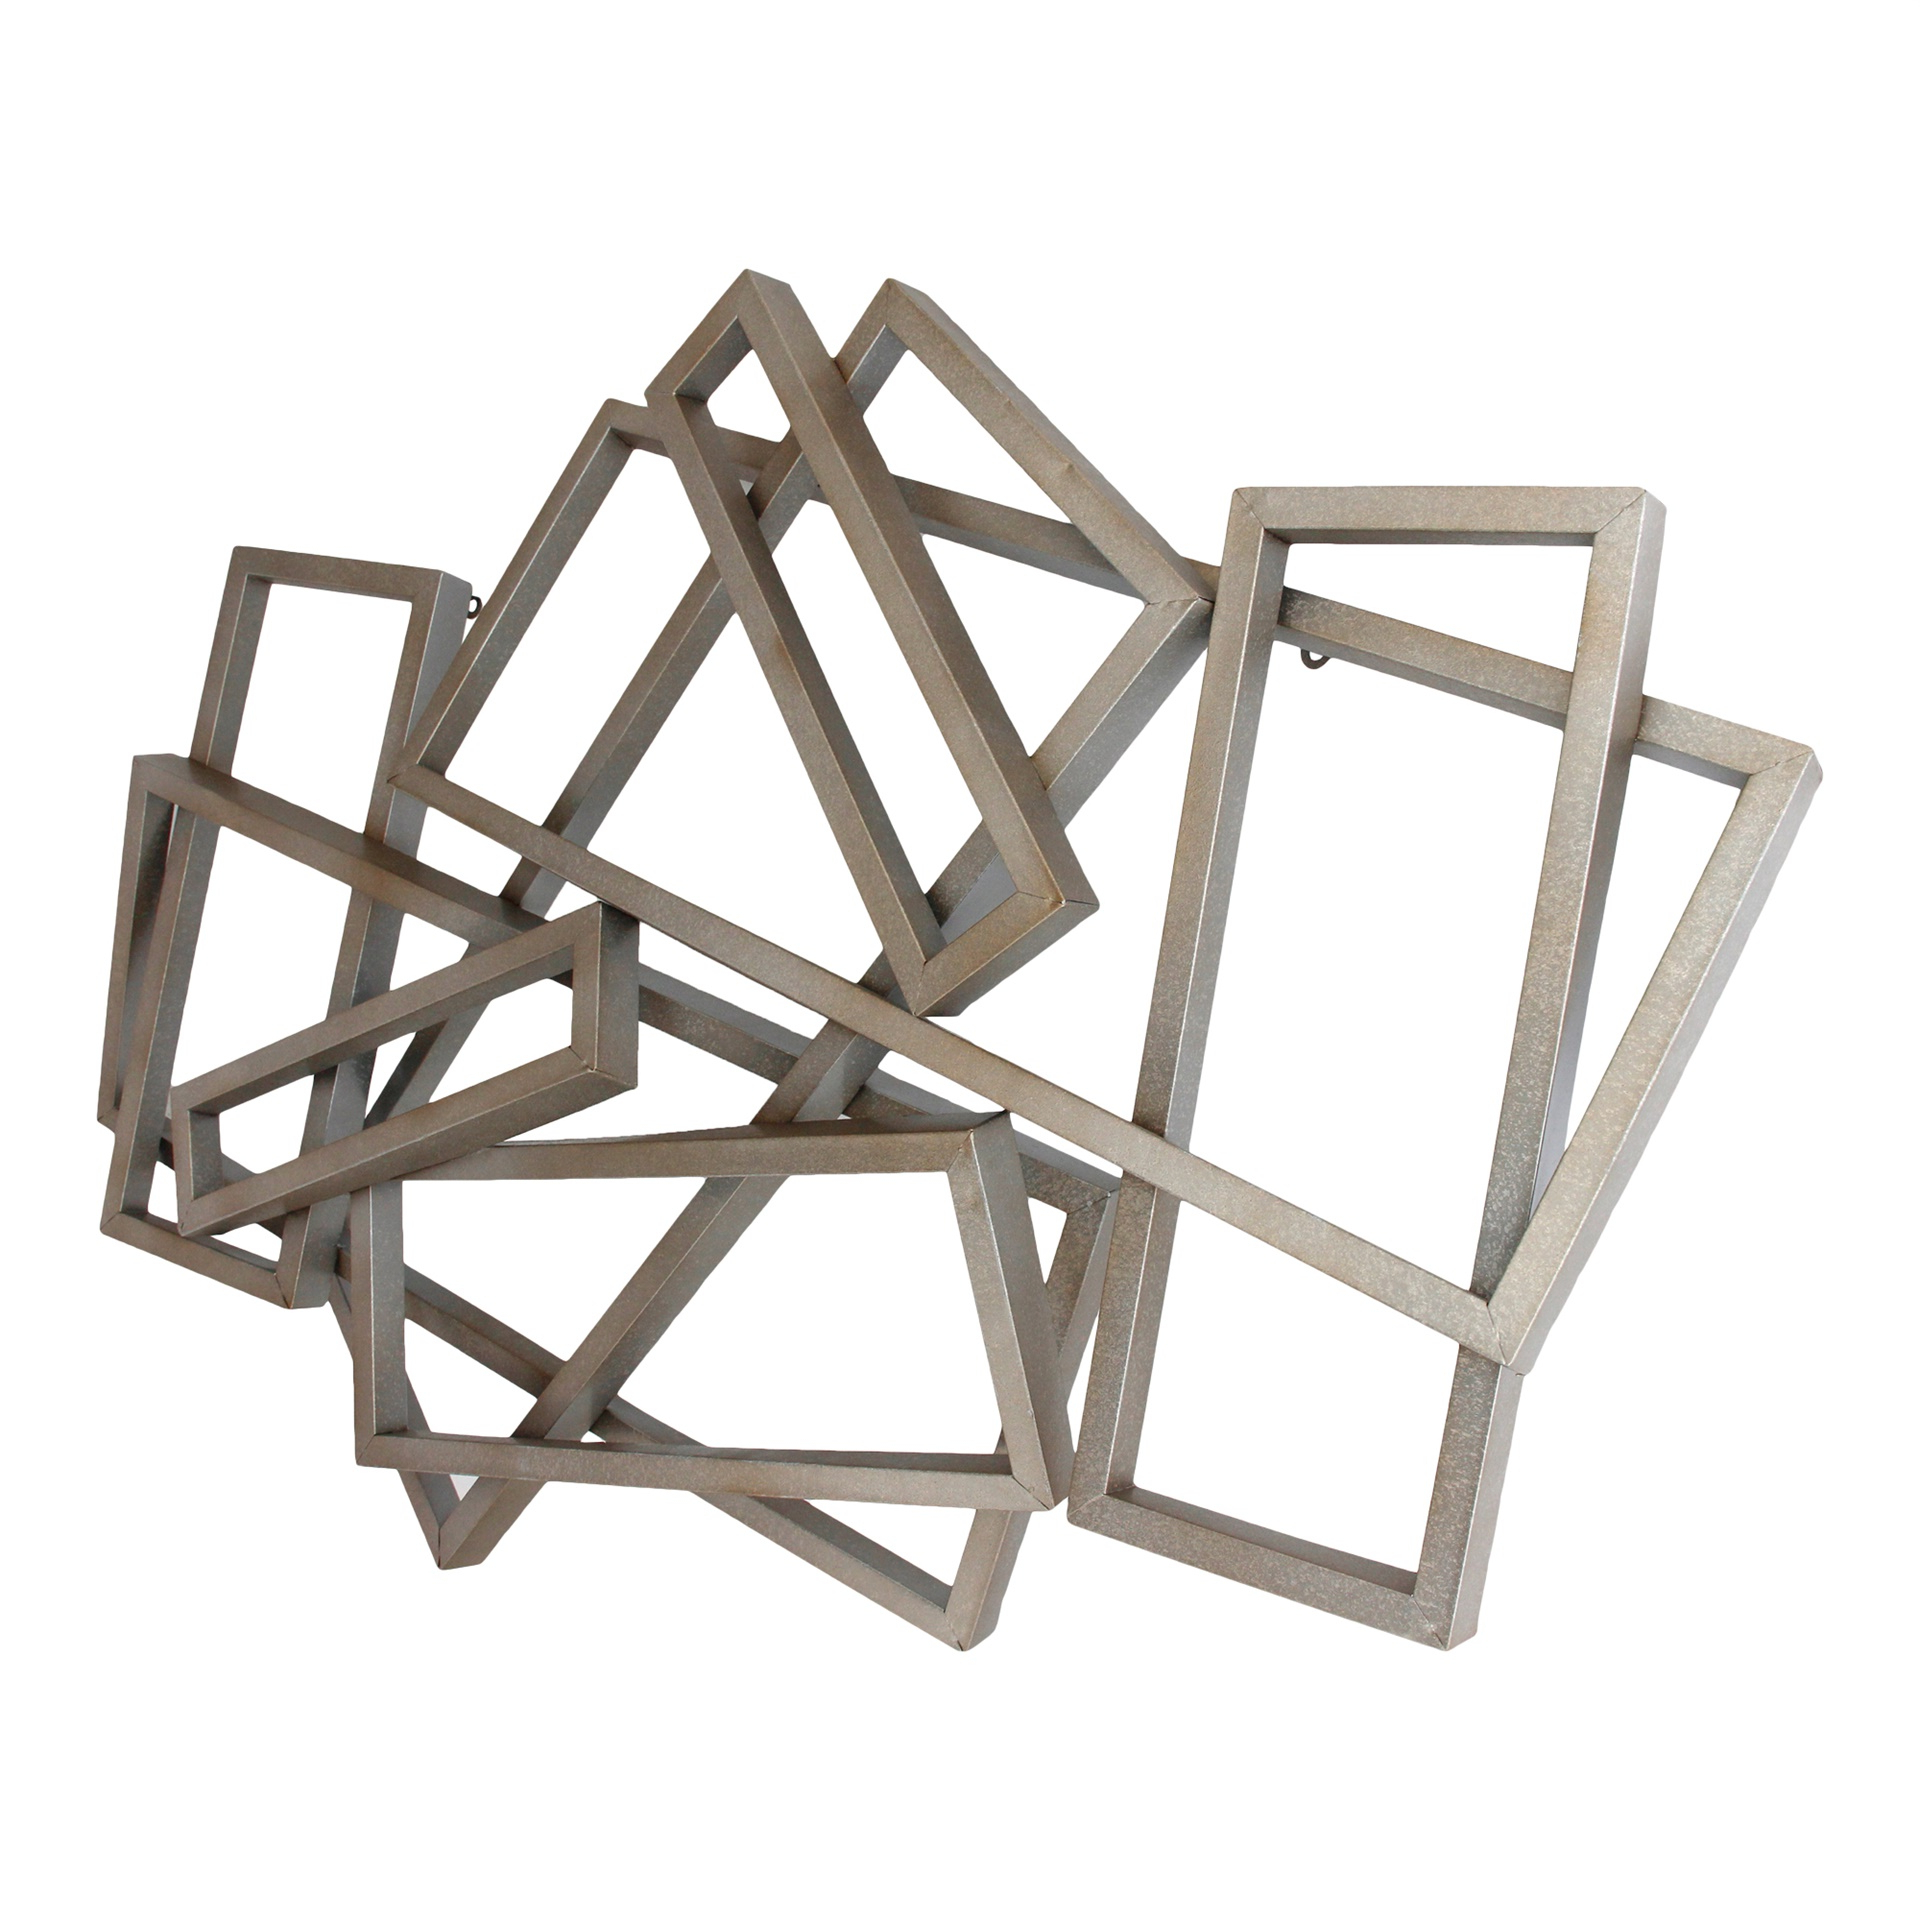 Metal Rectangular Wall Decor In Best And Newest Rectangular Metal Wall Décor (View 6 of 20)